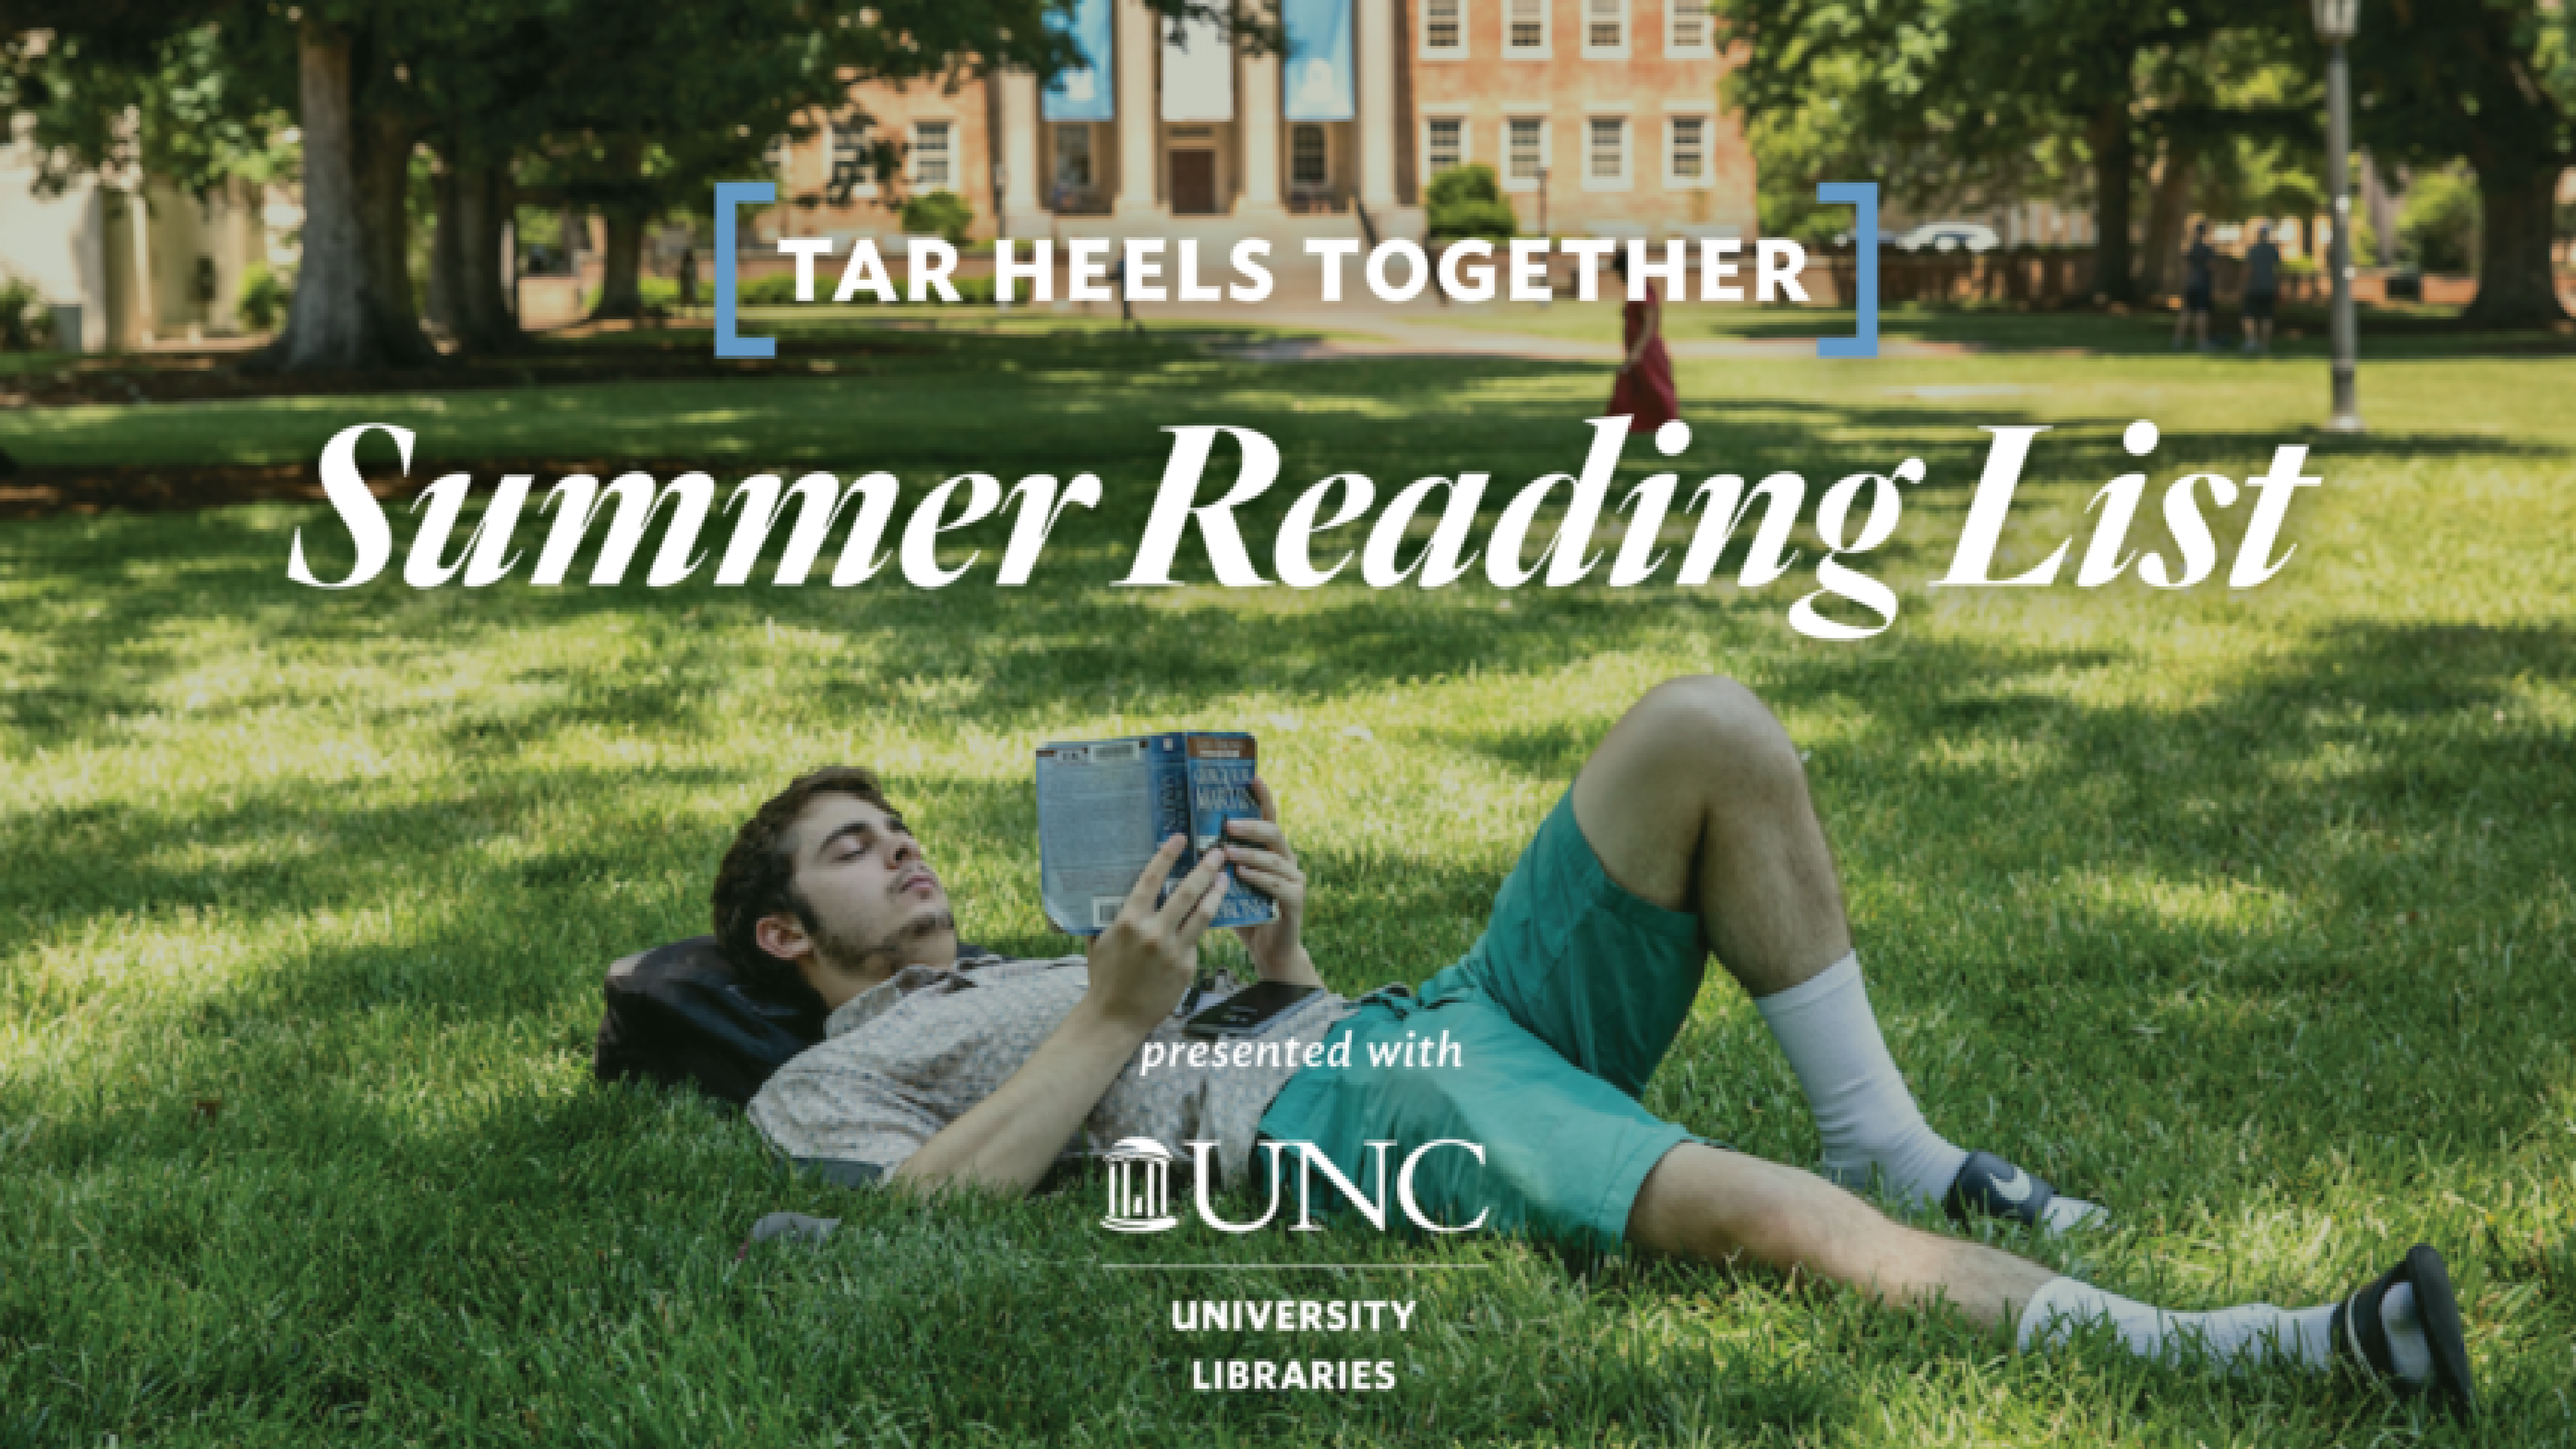 Library staff recommend Carolina alumni-authored books for weekly Tar Heels Together Summer Reading List